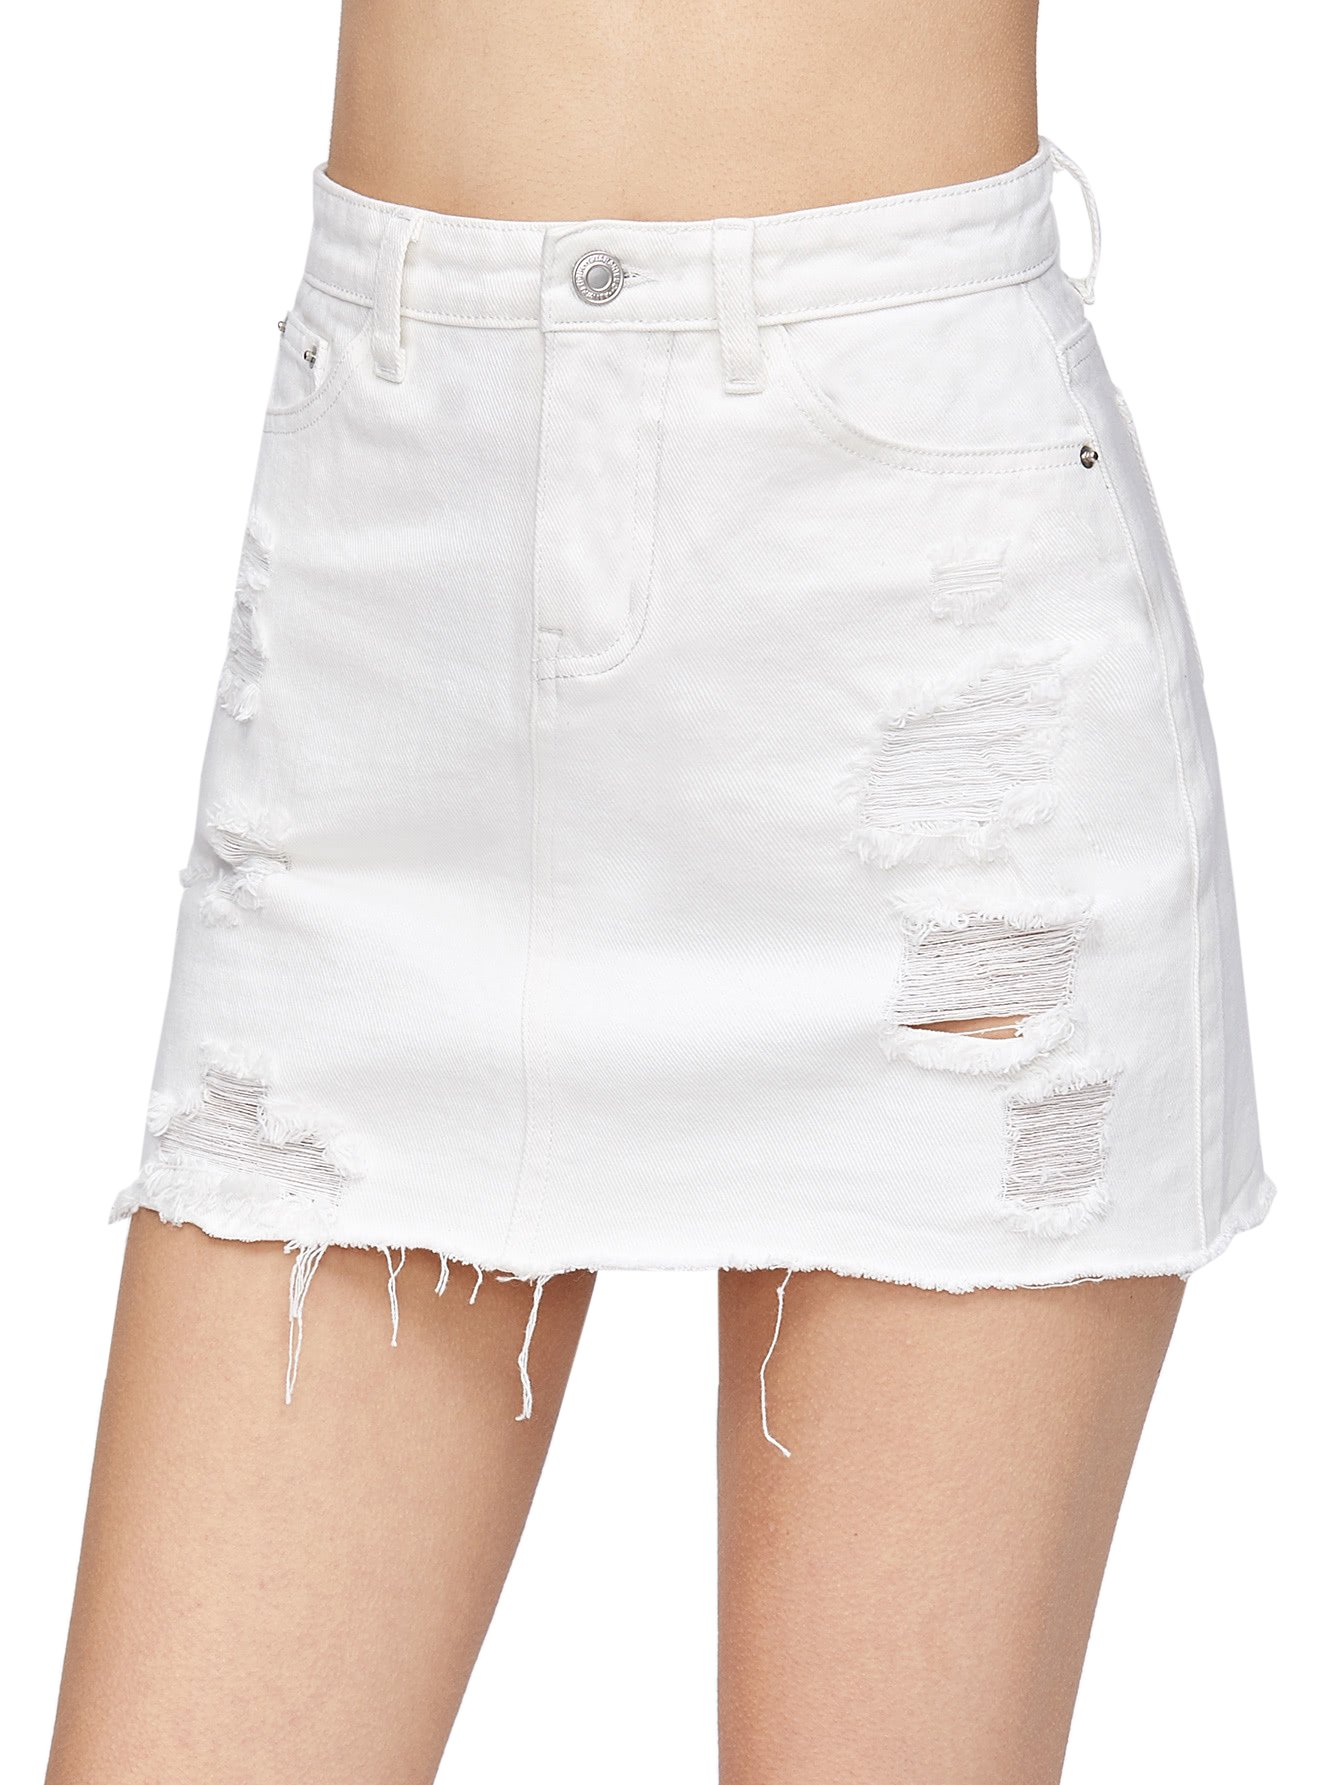 Verdusa Women's Casual Distressed Fray Hem A-Line Denim Short Skirt White S